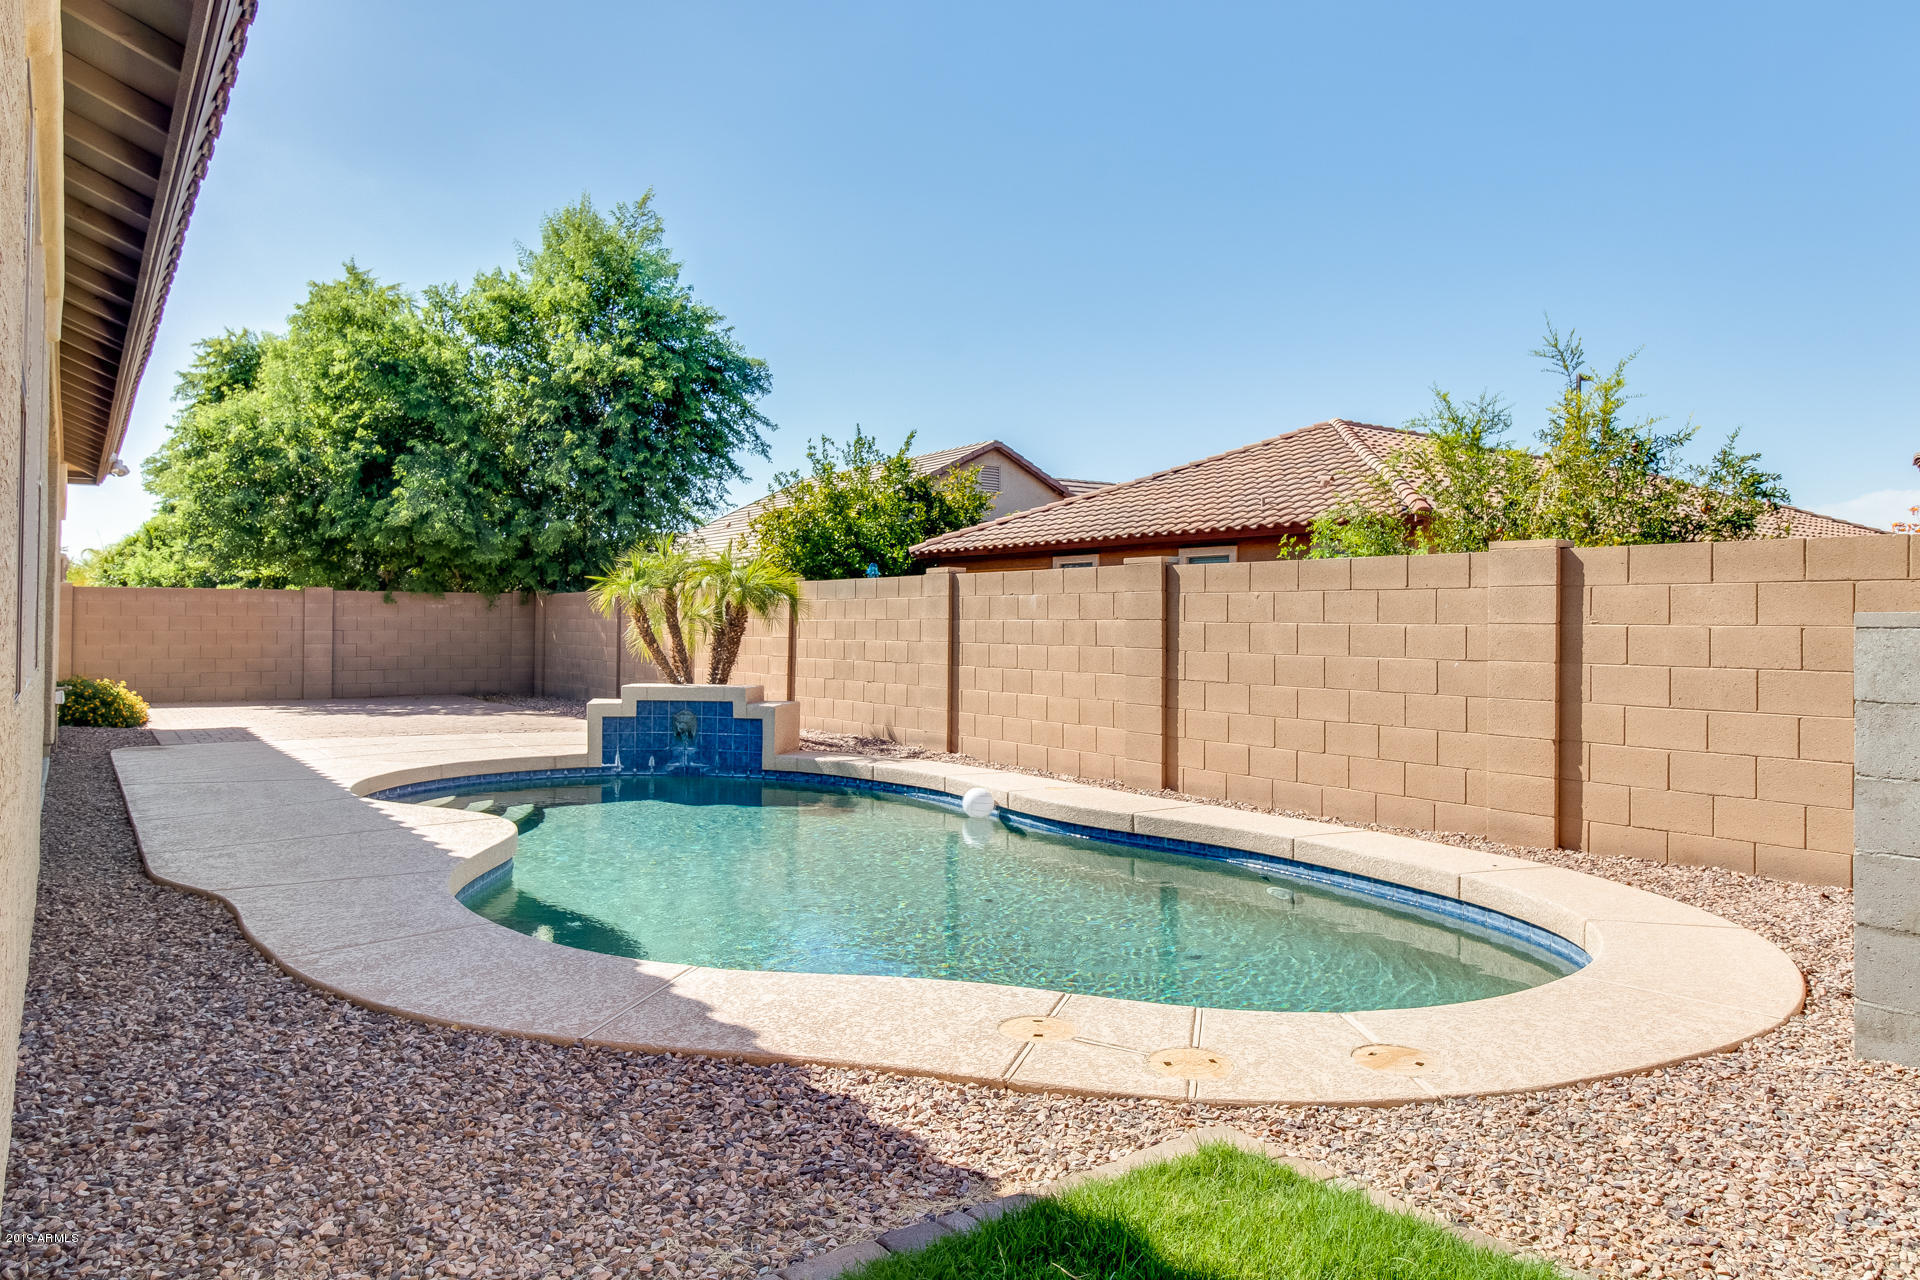 MLS 5971438 2686 E HAMPTON Lane, Gilbert, AZ 85295